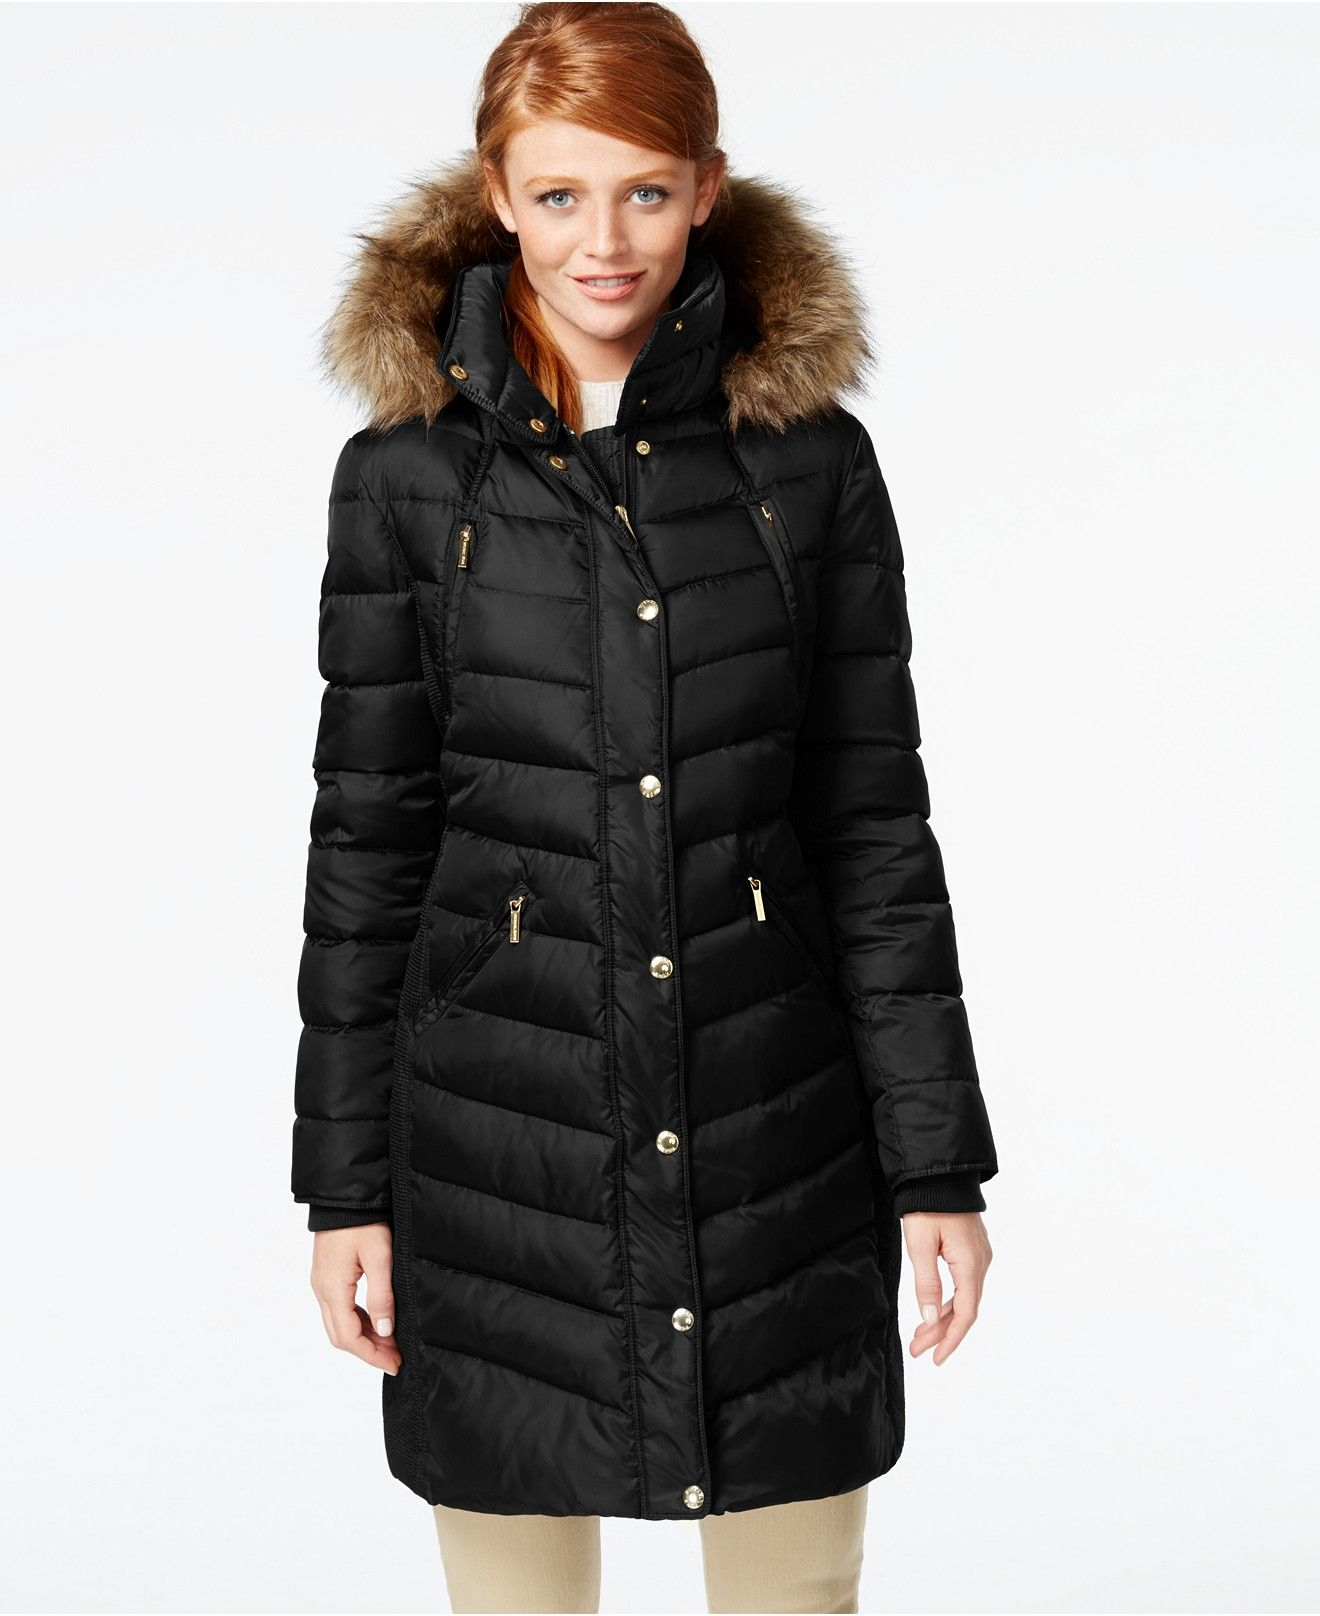 MICHAEL Michael Kors Hooded Faux-Fur-Trim Down Puffer Coat - Coats - Women